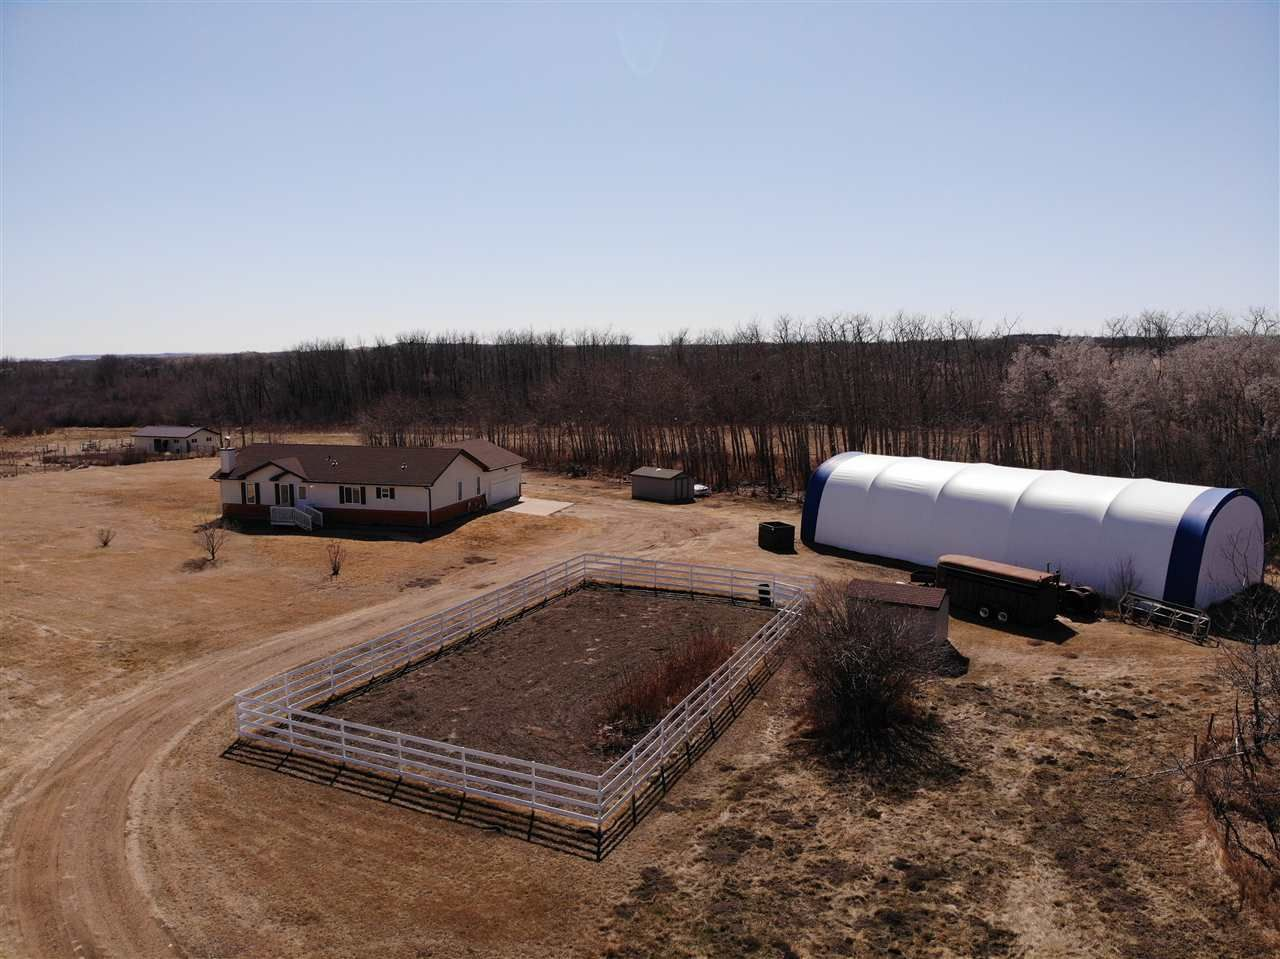 Main Photo: 42540A HWY 13: Rural Flagstaff County House for sale : MLS®# E4237916